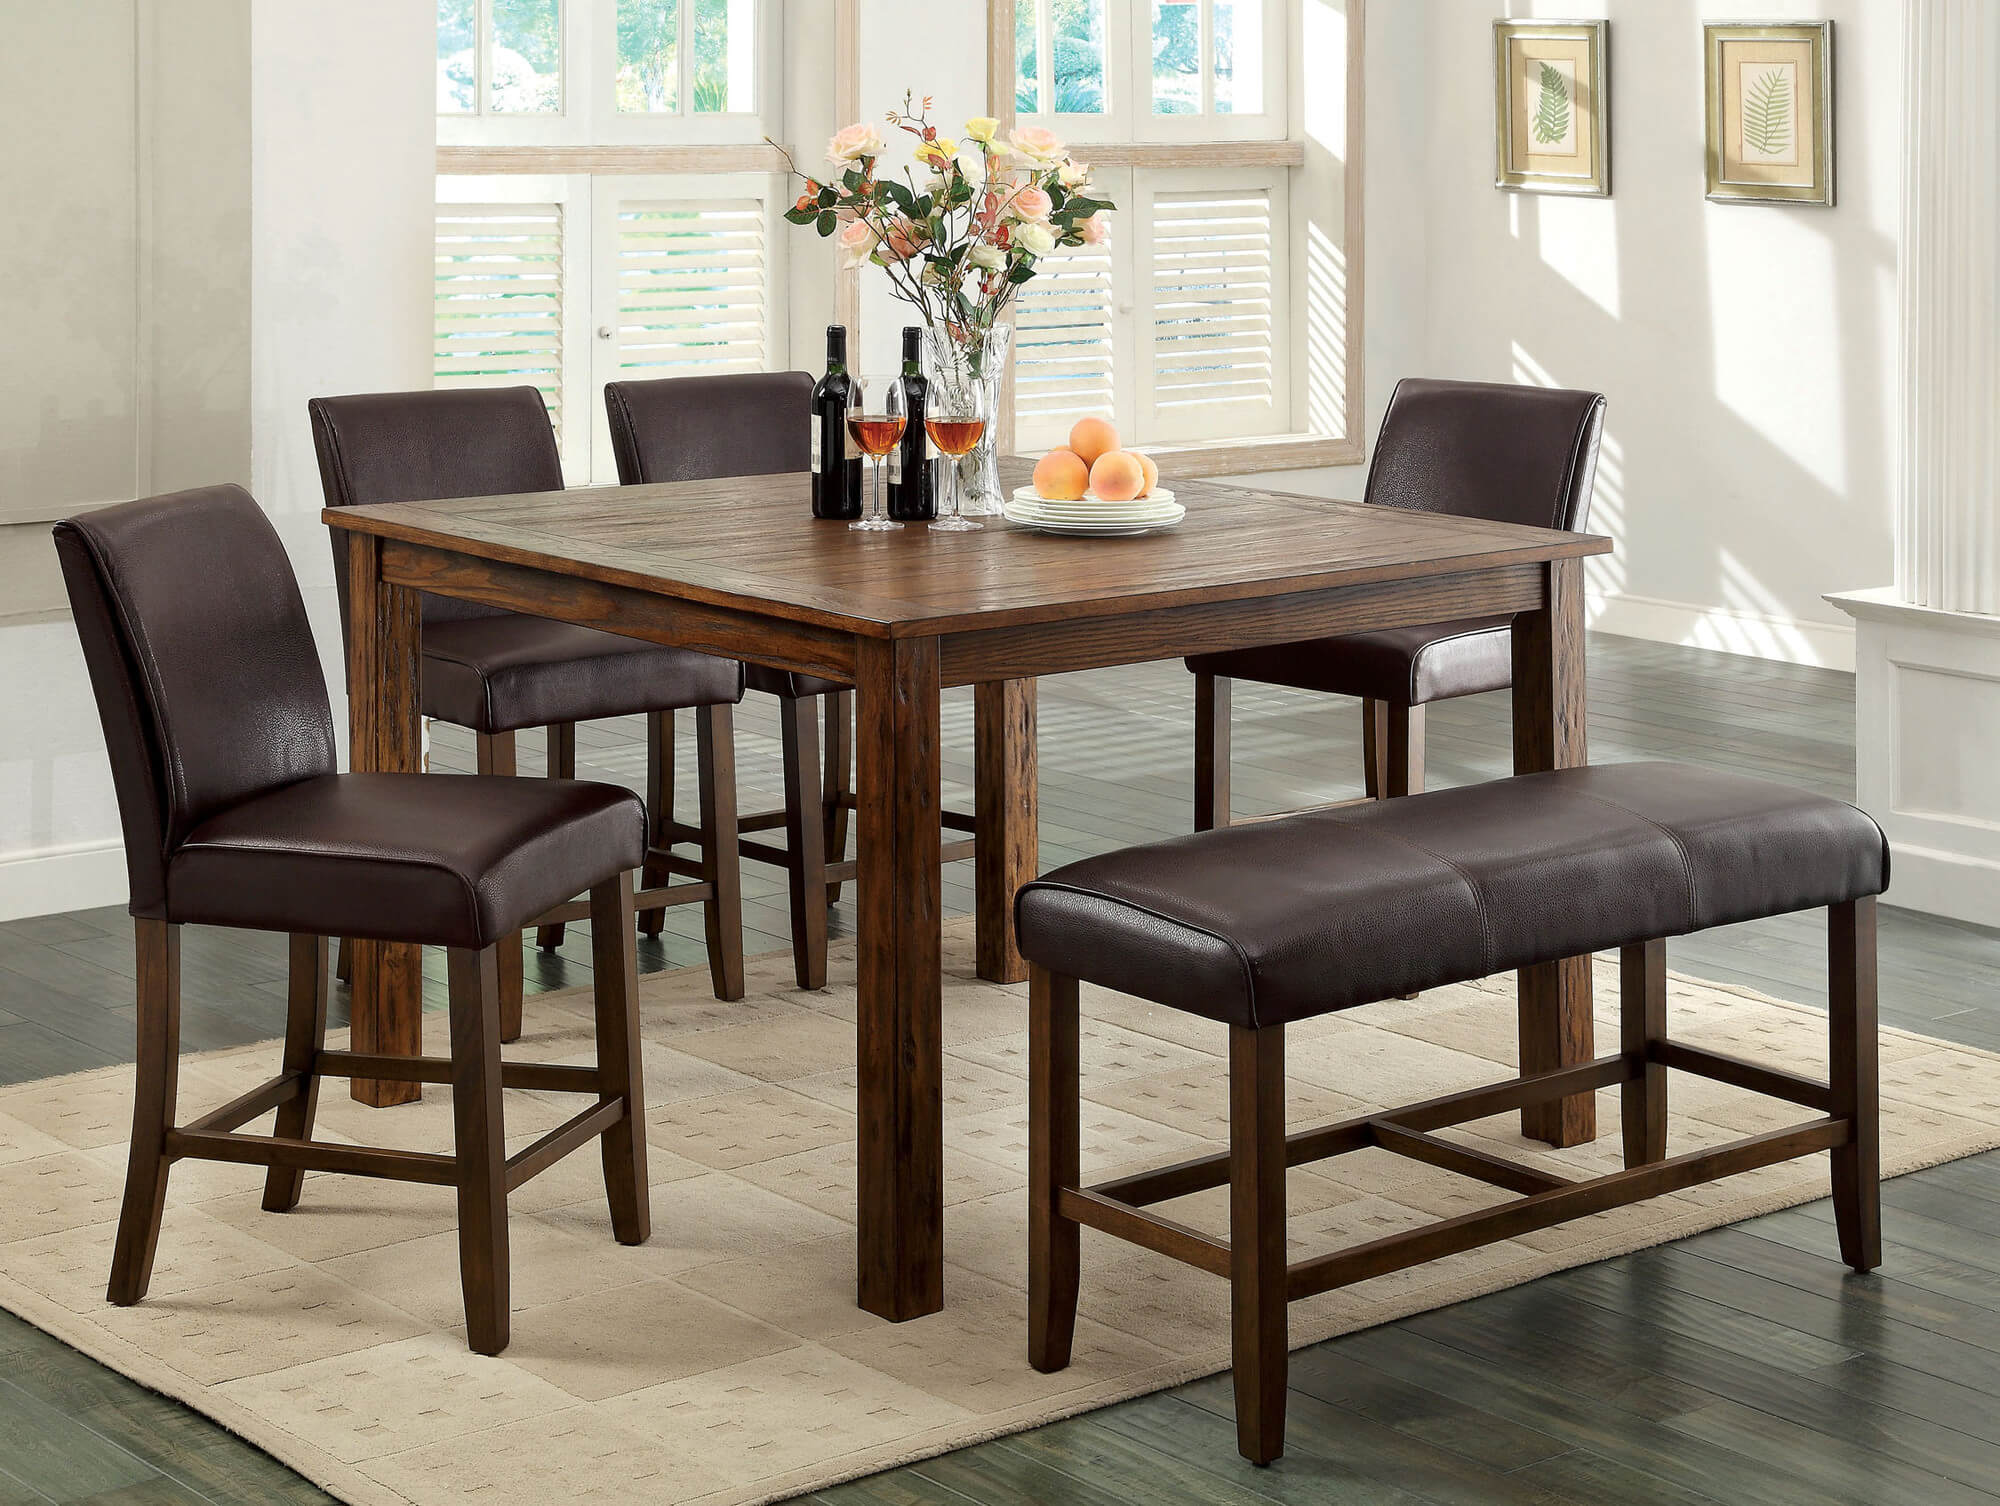 Counter Height Rustic Dining Room Set With Bench. Wood Is Dark Oak Finish;  Constructed